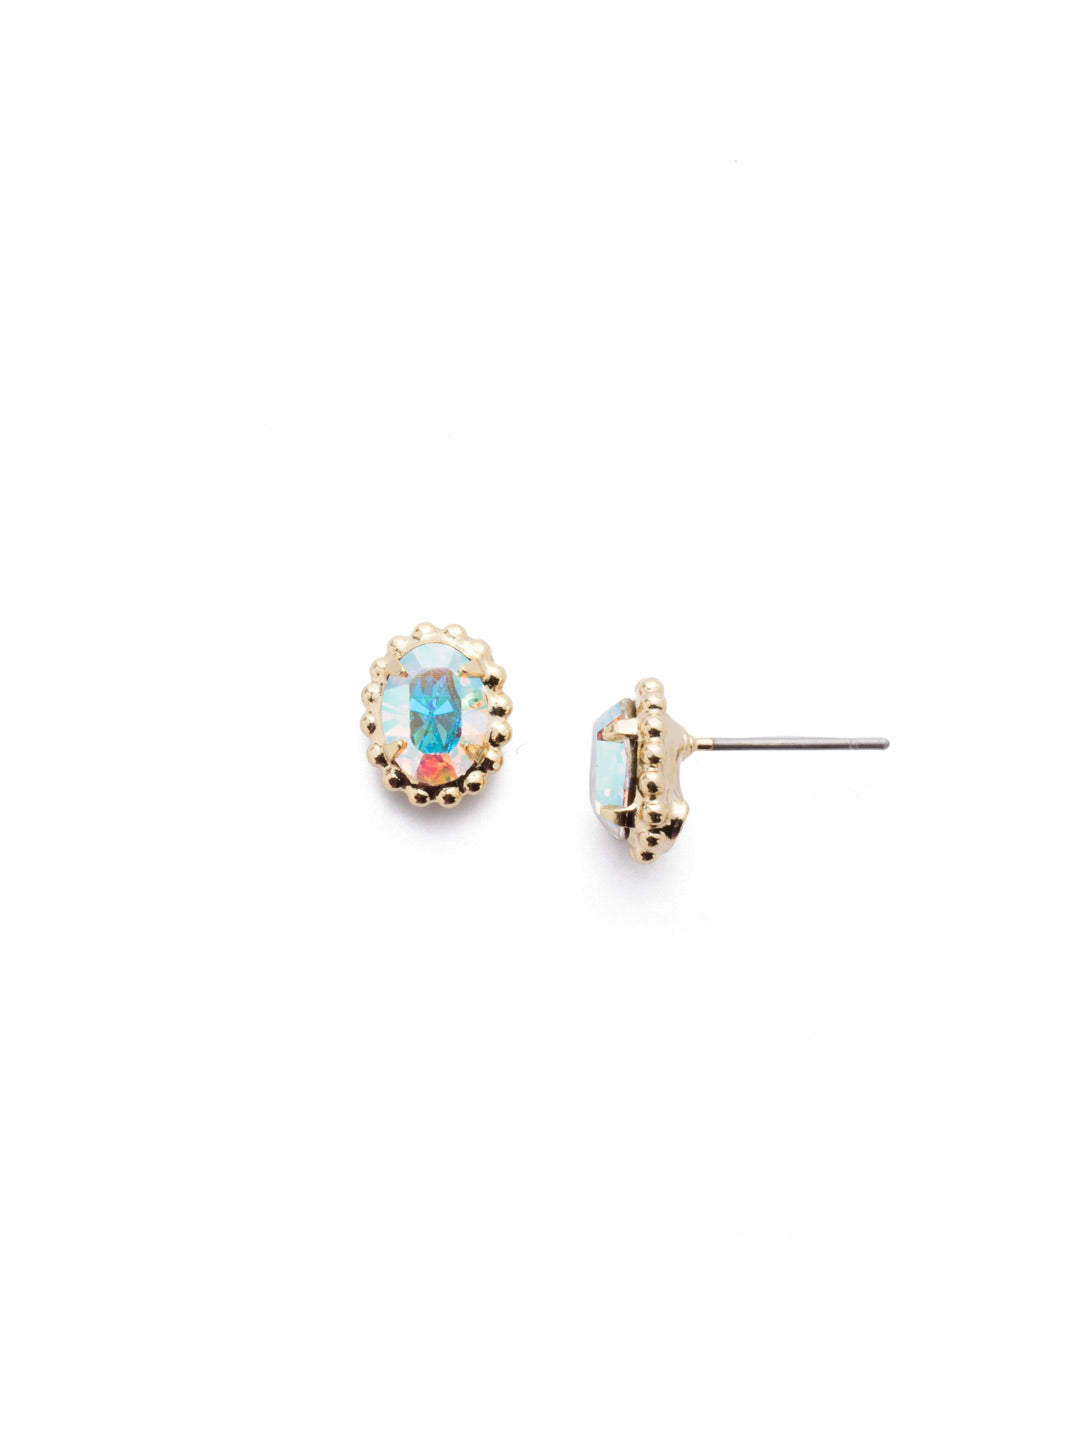 Maisie Stud Earrings - EEH11BGCAB